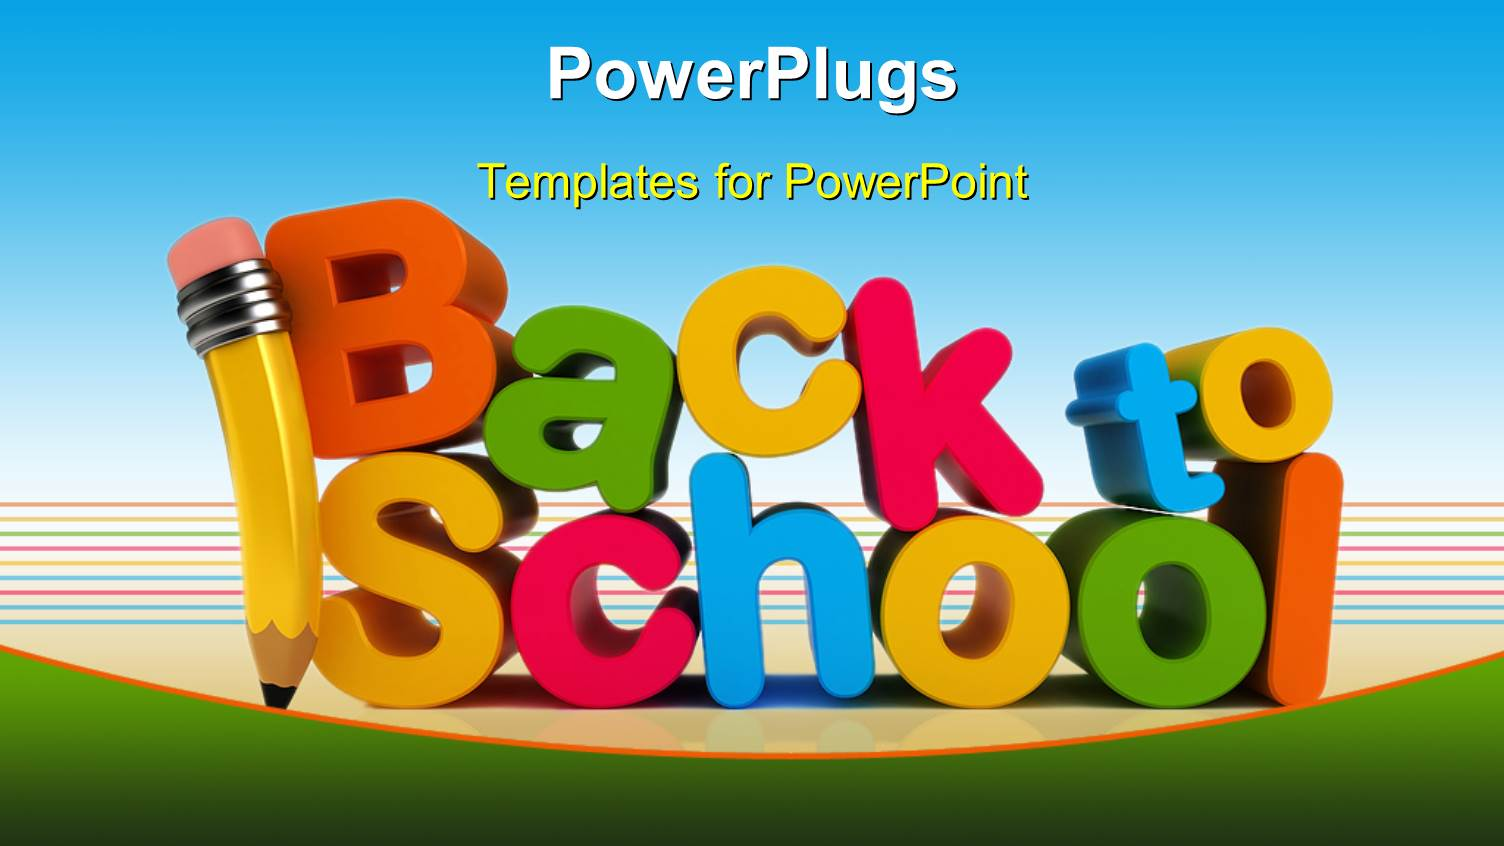 back school powerpoint templates | crystalgraphics, Powerpoint templates